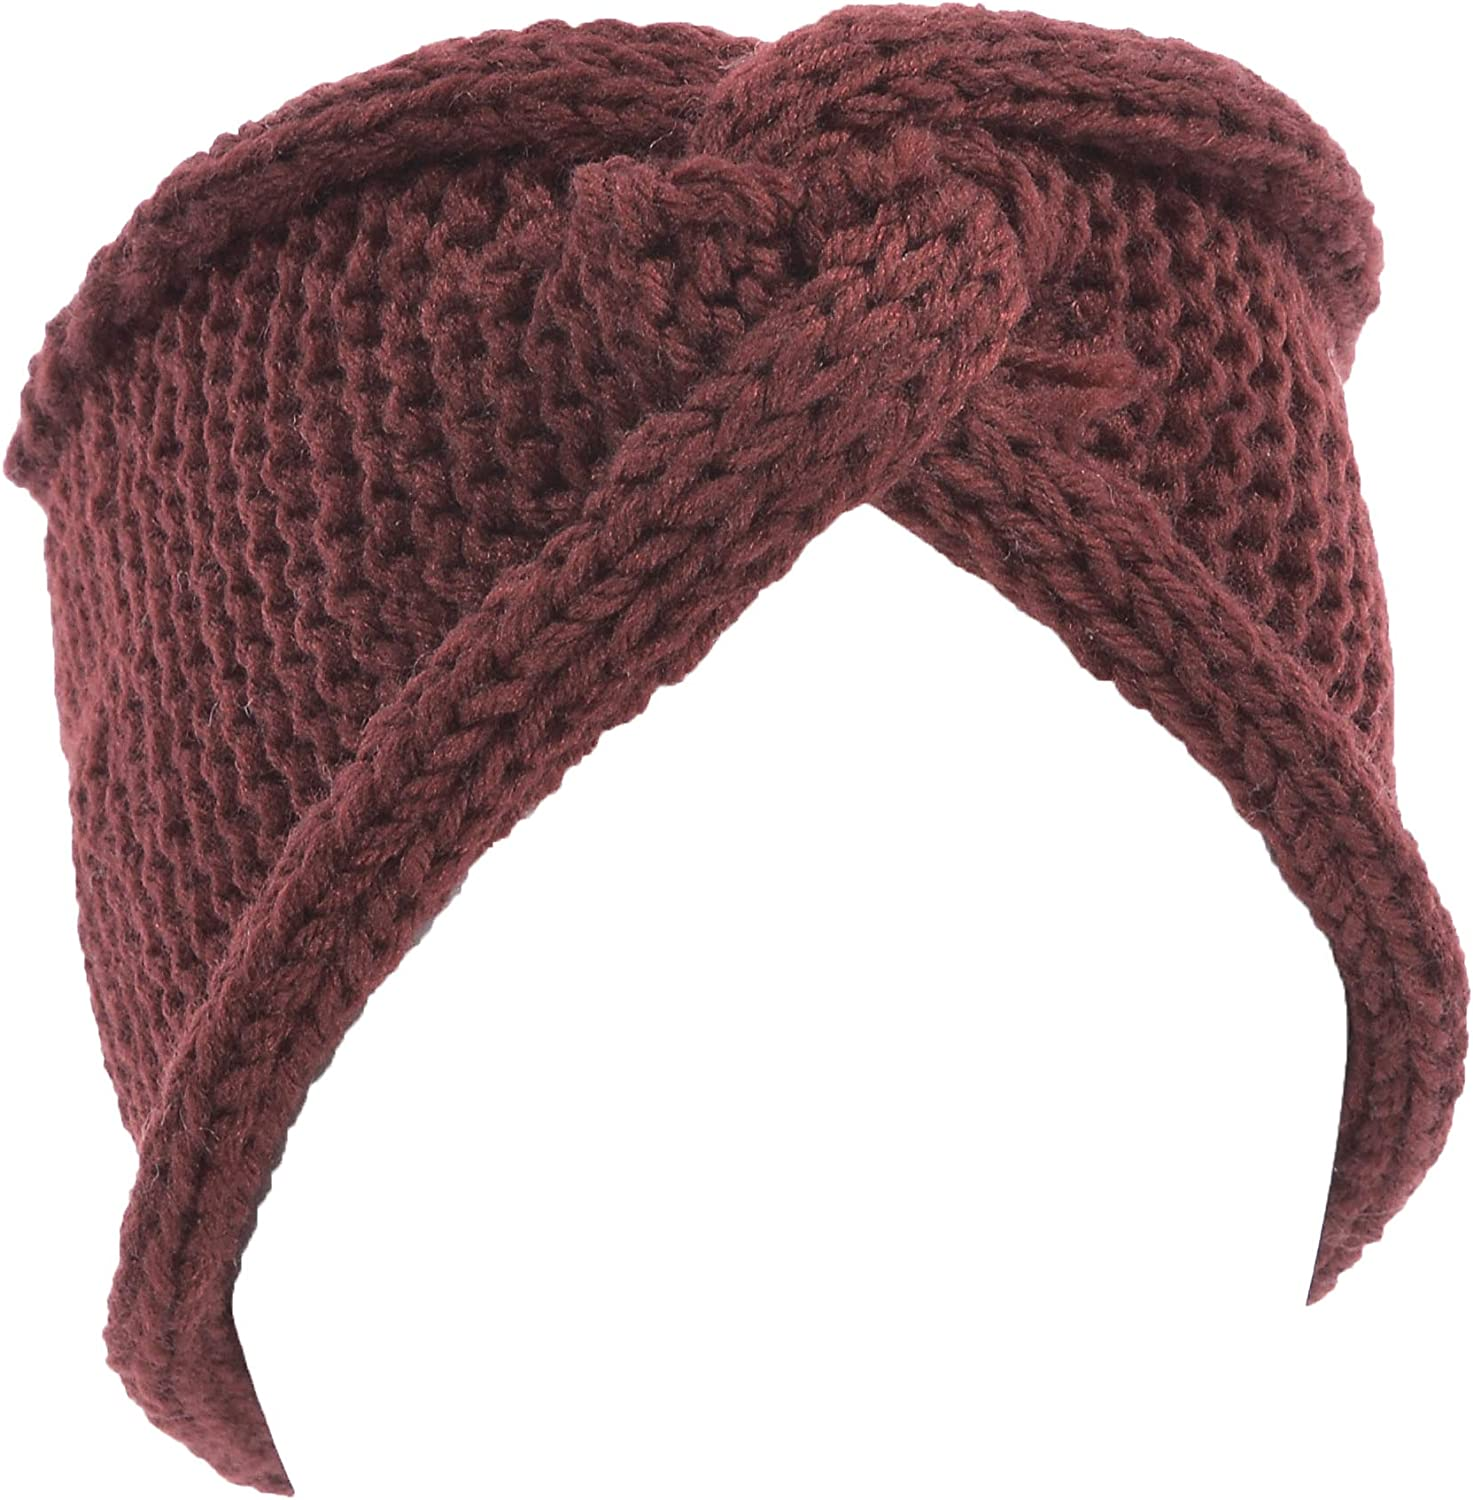 Hand By Hand Twist Knitted Headband Knot Headwrap Stylish Comfortable